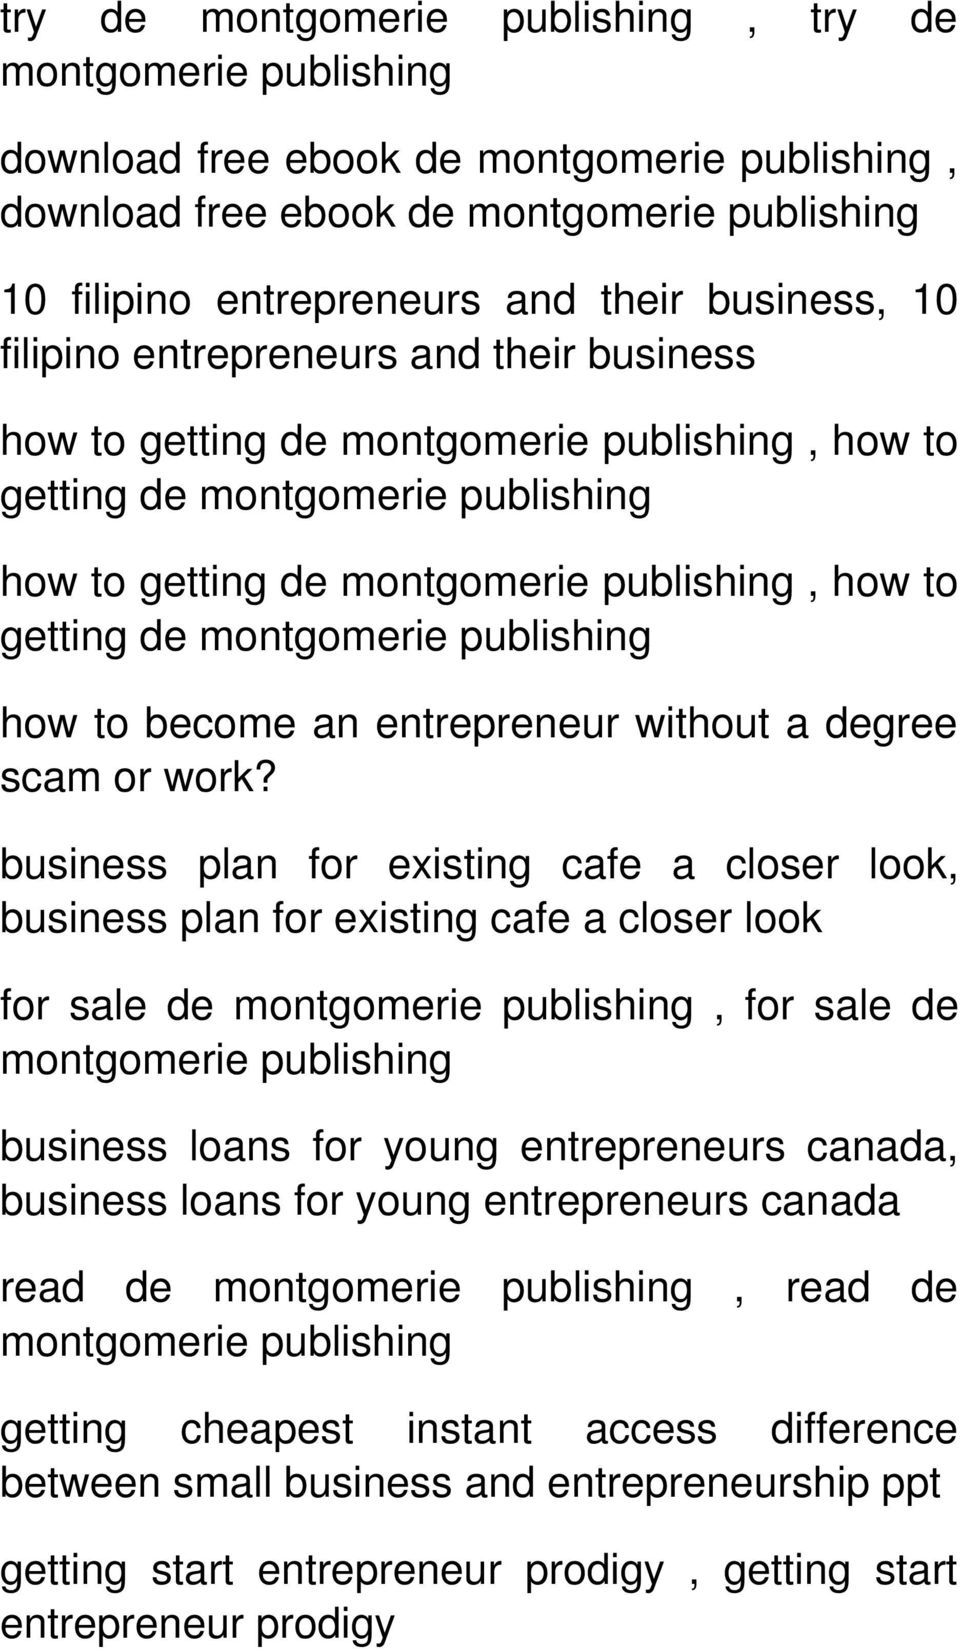 business plan for existing cafe a closer look, business plan for existing cafe a closer look for sale de, for sale de business loans for young entrepreneurs canada,